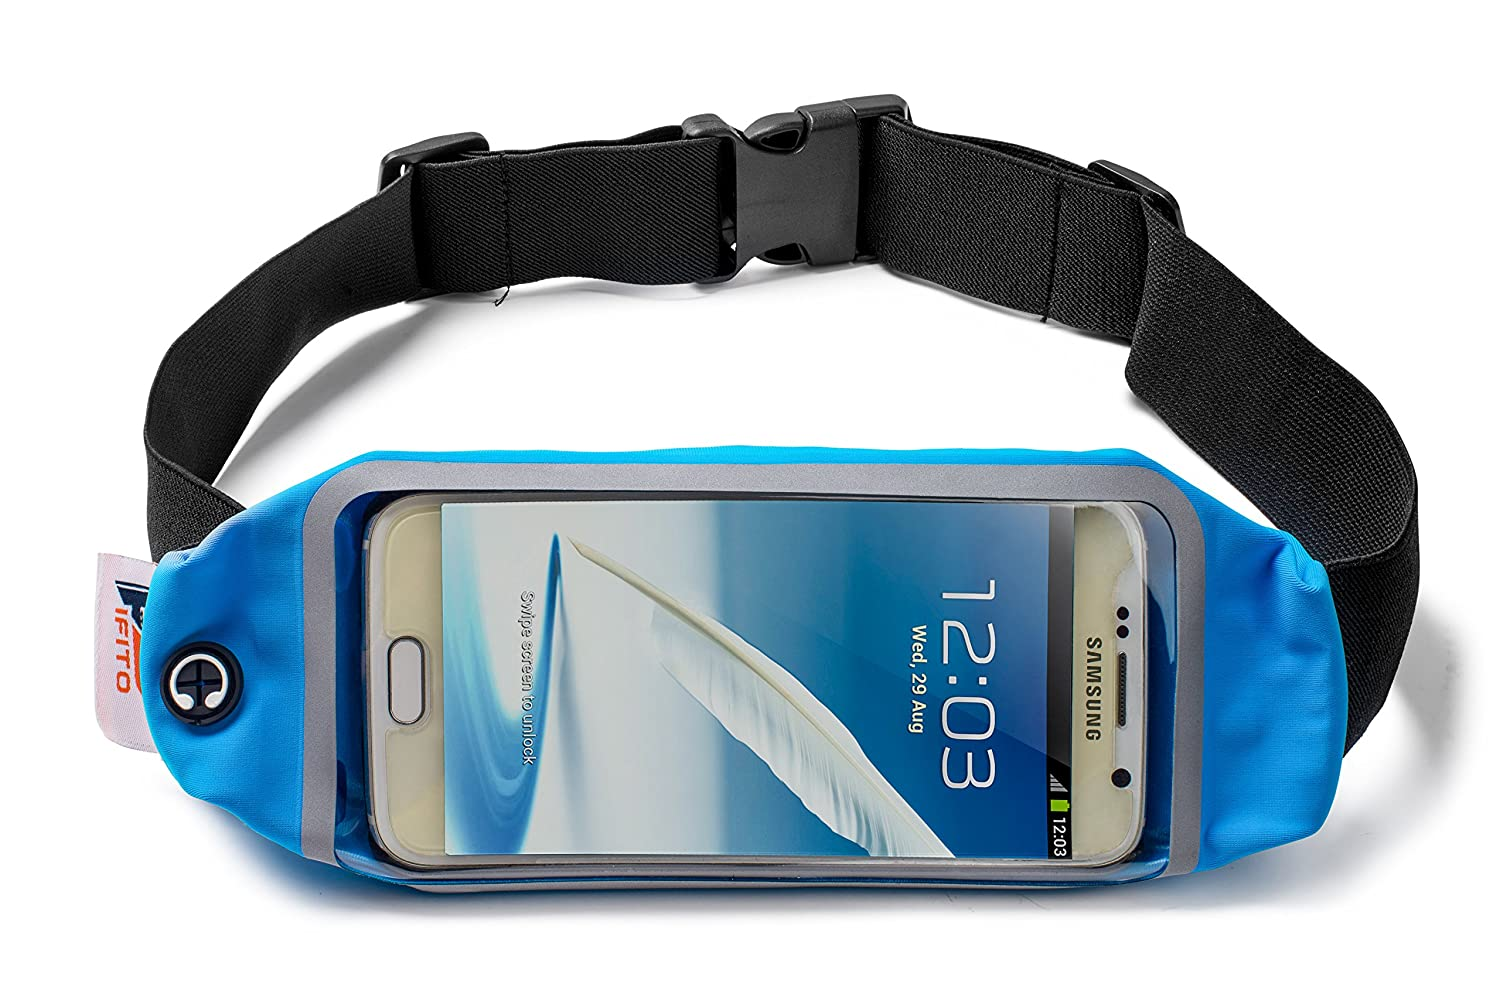 Pifito Running Belt TM – Touchscreen Window Fits All Phones Blue, 5.5 in. Touchscreen Window